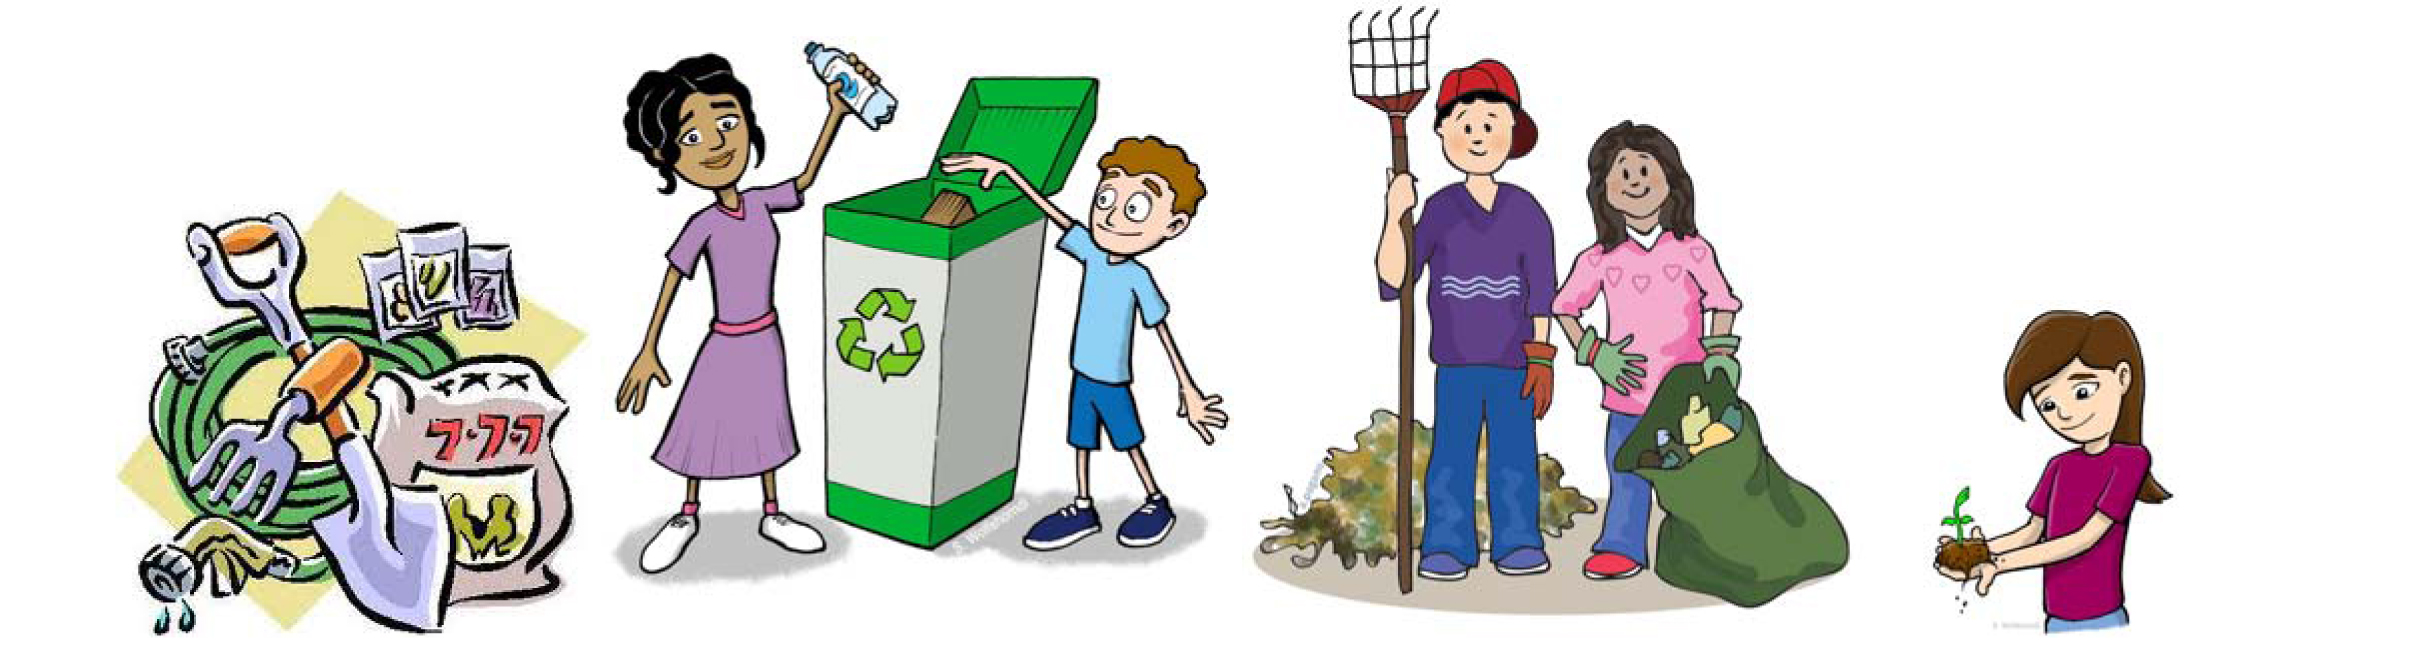 Clip Art Community Service Programs.